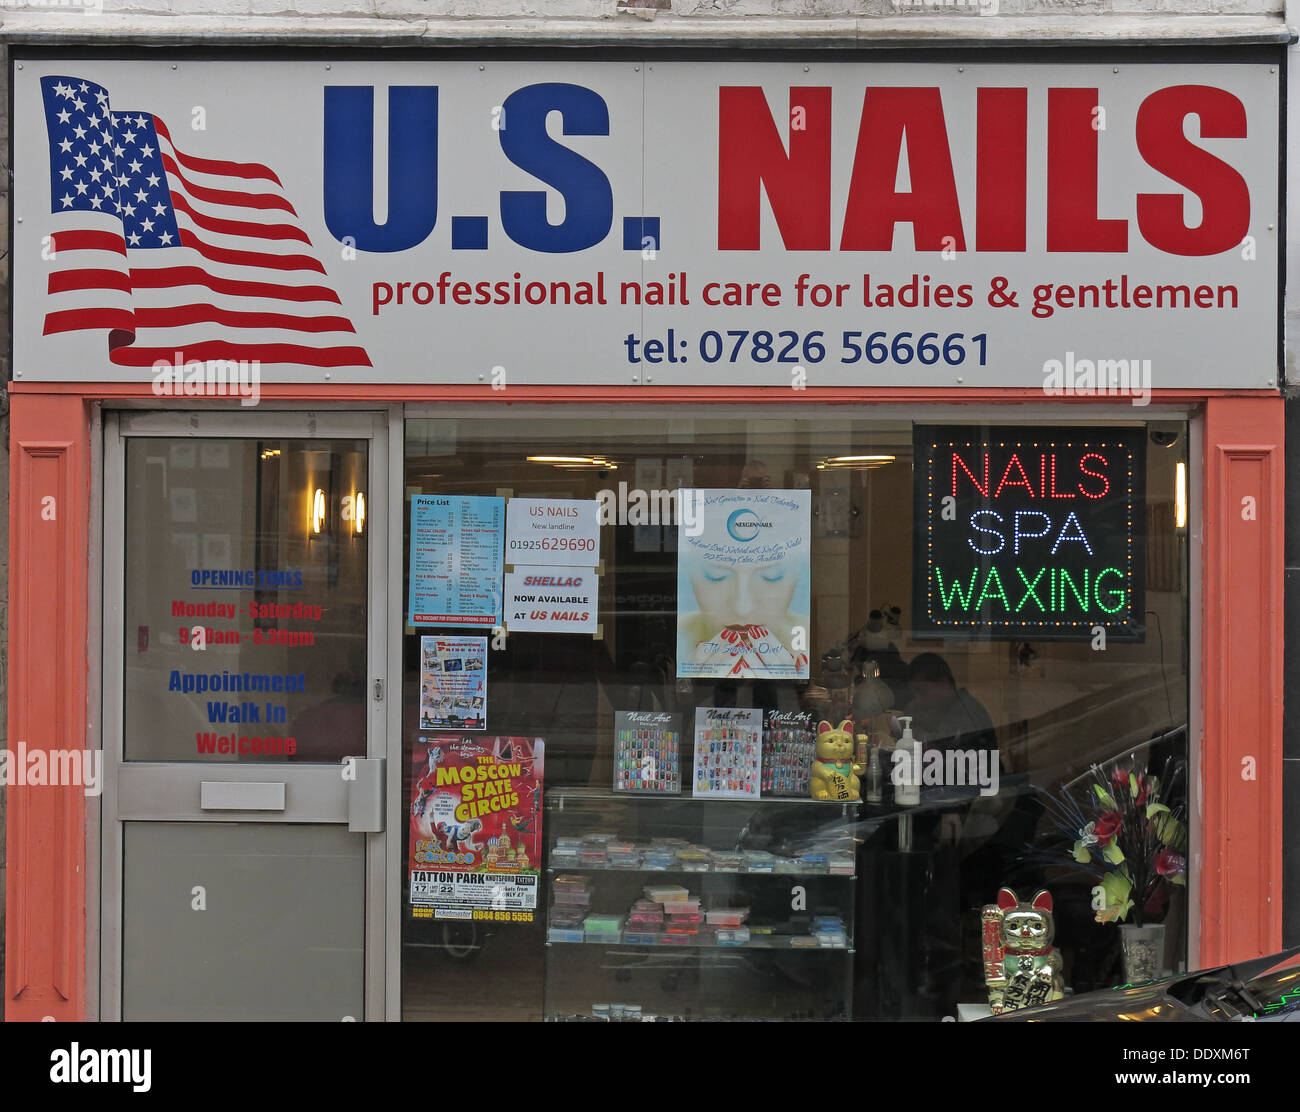 nail,nailbar,bar,US,professional,care,spa,wax,waxing,beauty,treatment,treatments,american,Warrington,Sankey,Cheshire,chain,money,laundering,walk,in,beautiful,care,services,such,as,manicures,pedicures,and,nail,enhancements,technicians,manicurists,Nailists,acrylics,silk,or,fiberglass,wraps,French,Town,gotonysmith,manicures,human,trafficking,illegally,trafficked,to,Britain,from,Vietnam,53,Sankey,Street,Warrington,Bank,Quay,Warrington,Cheshire,England,UK,WA1,1SL,WA1,1SL,centre,center,Buy Pictures of,Buy Images Of